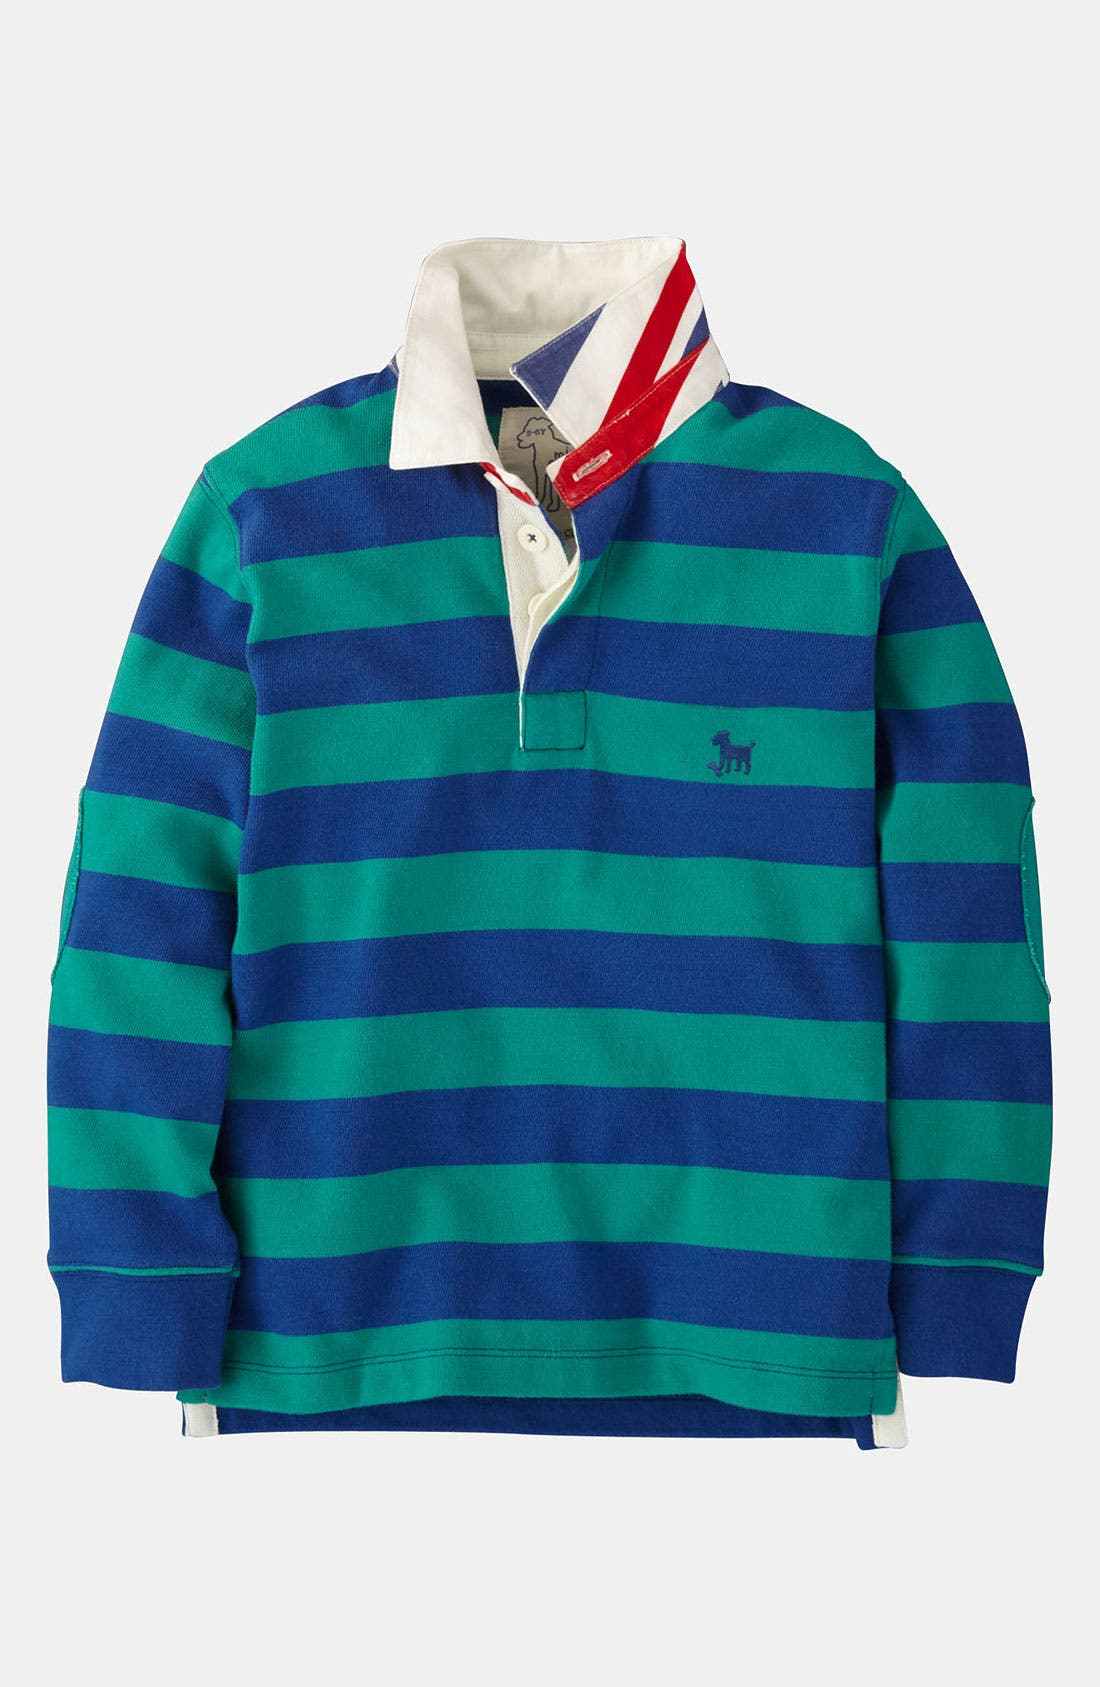 Main Image - Mini Boden Rugby Shirt (Toddler)